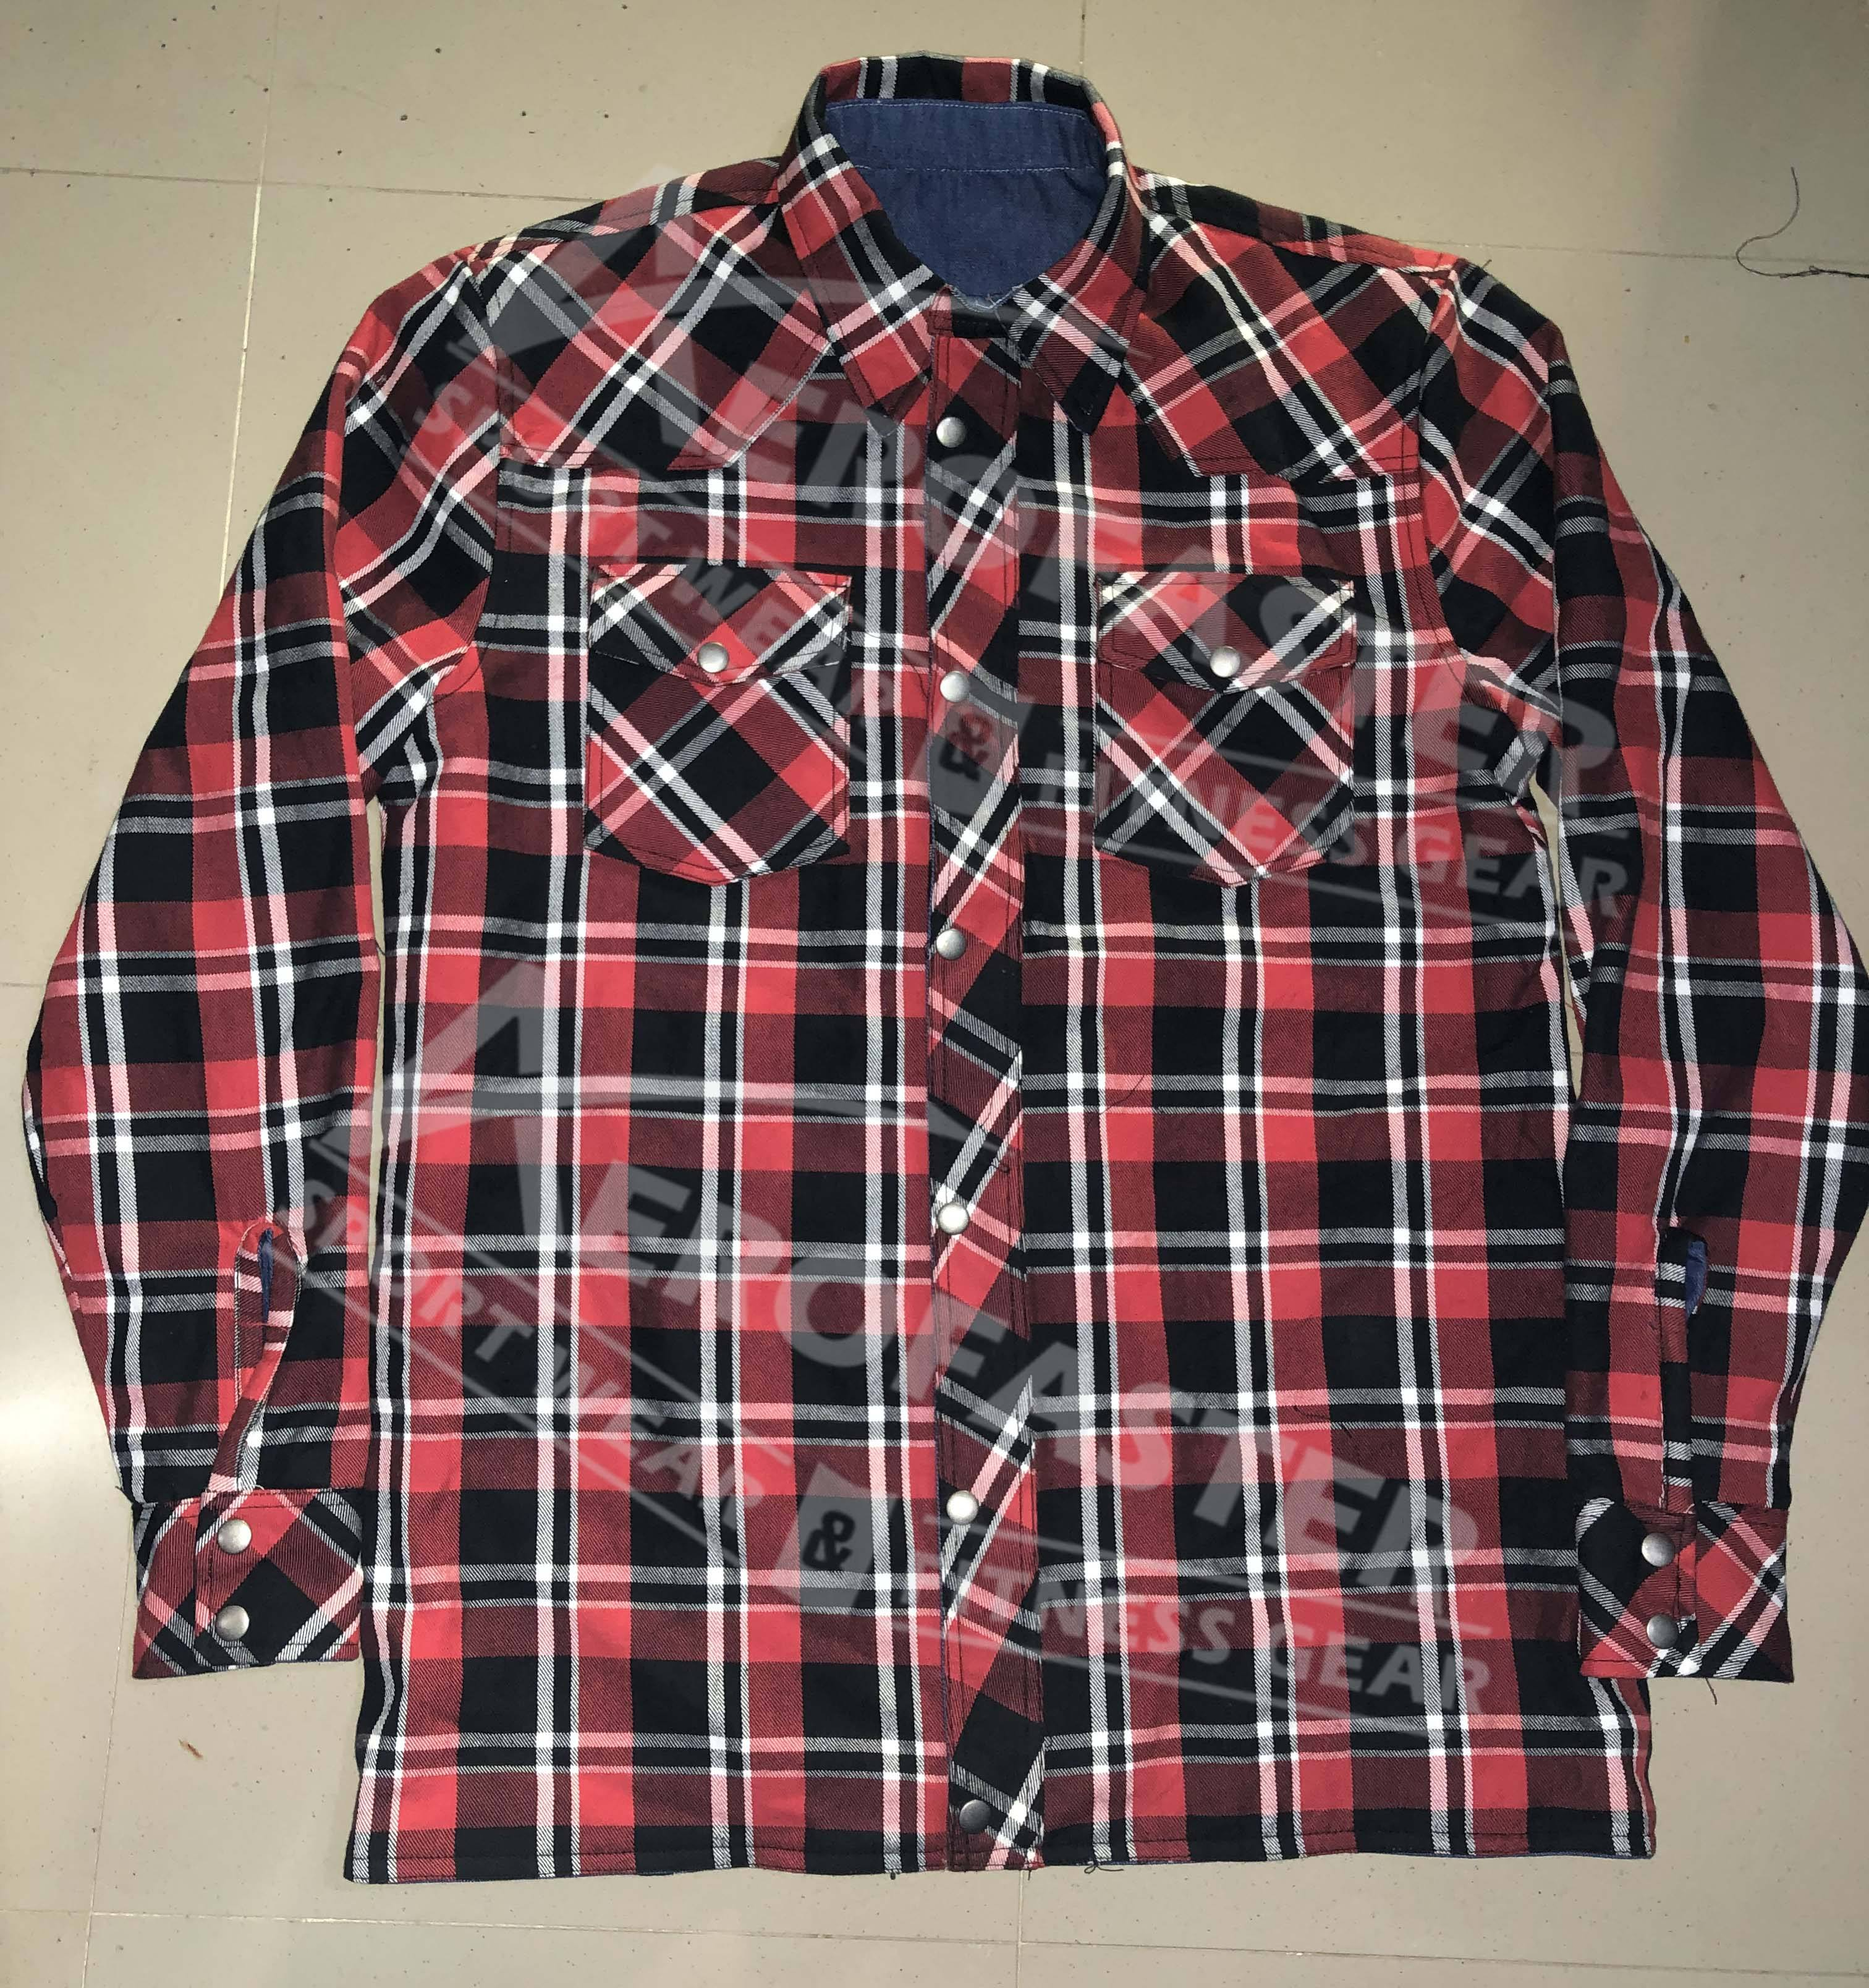 Motor Biker Flannel Denim Shirts